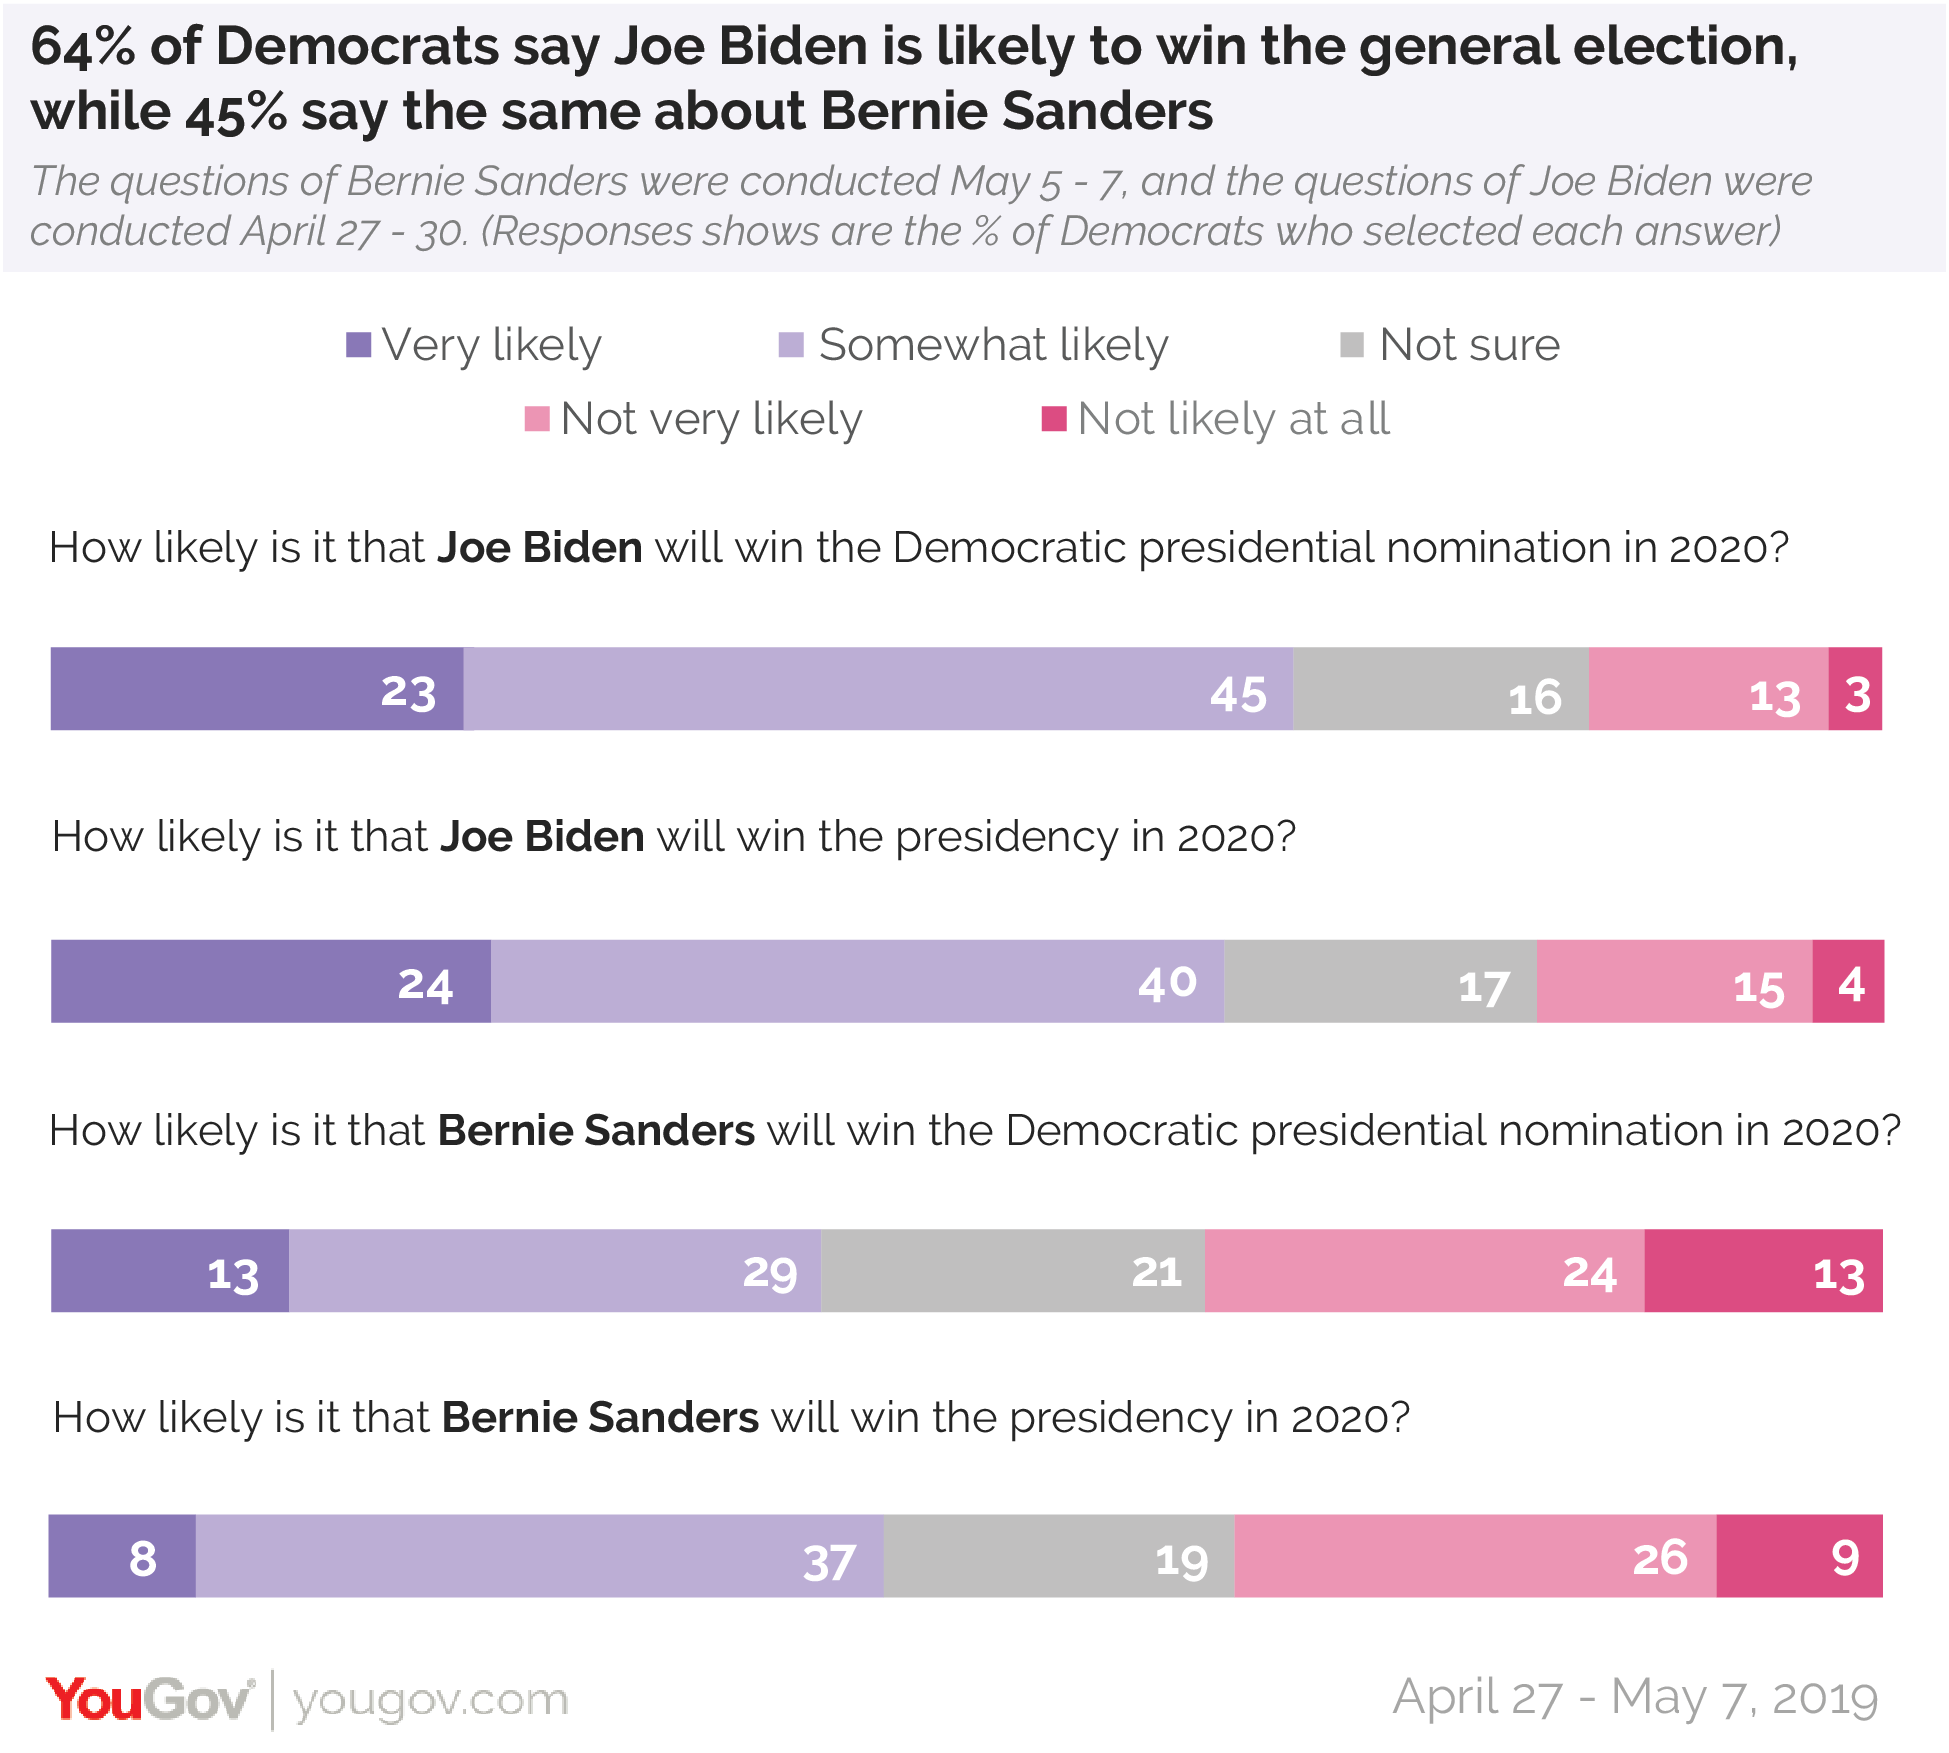 64% of Democrats say Joe Biden is likely to win the general election, while 45% say the same about Bernie Sanders